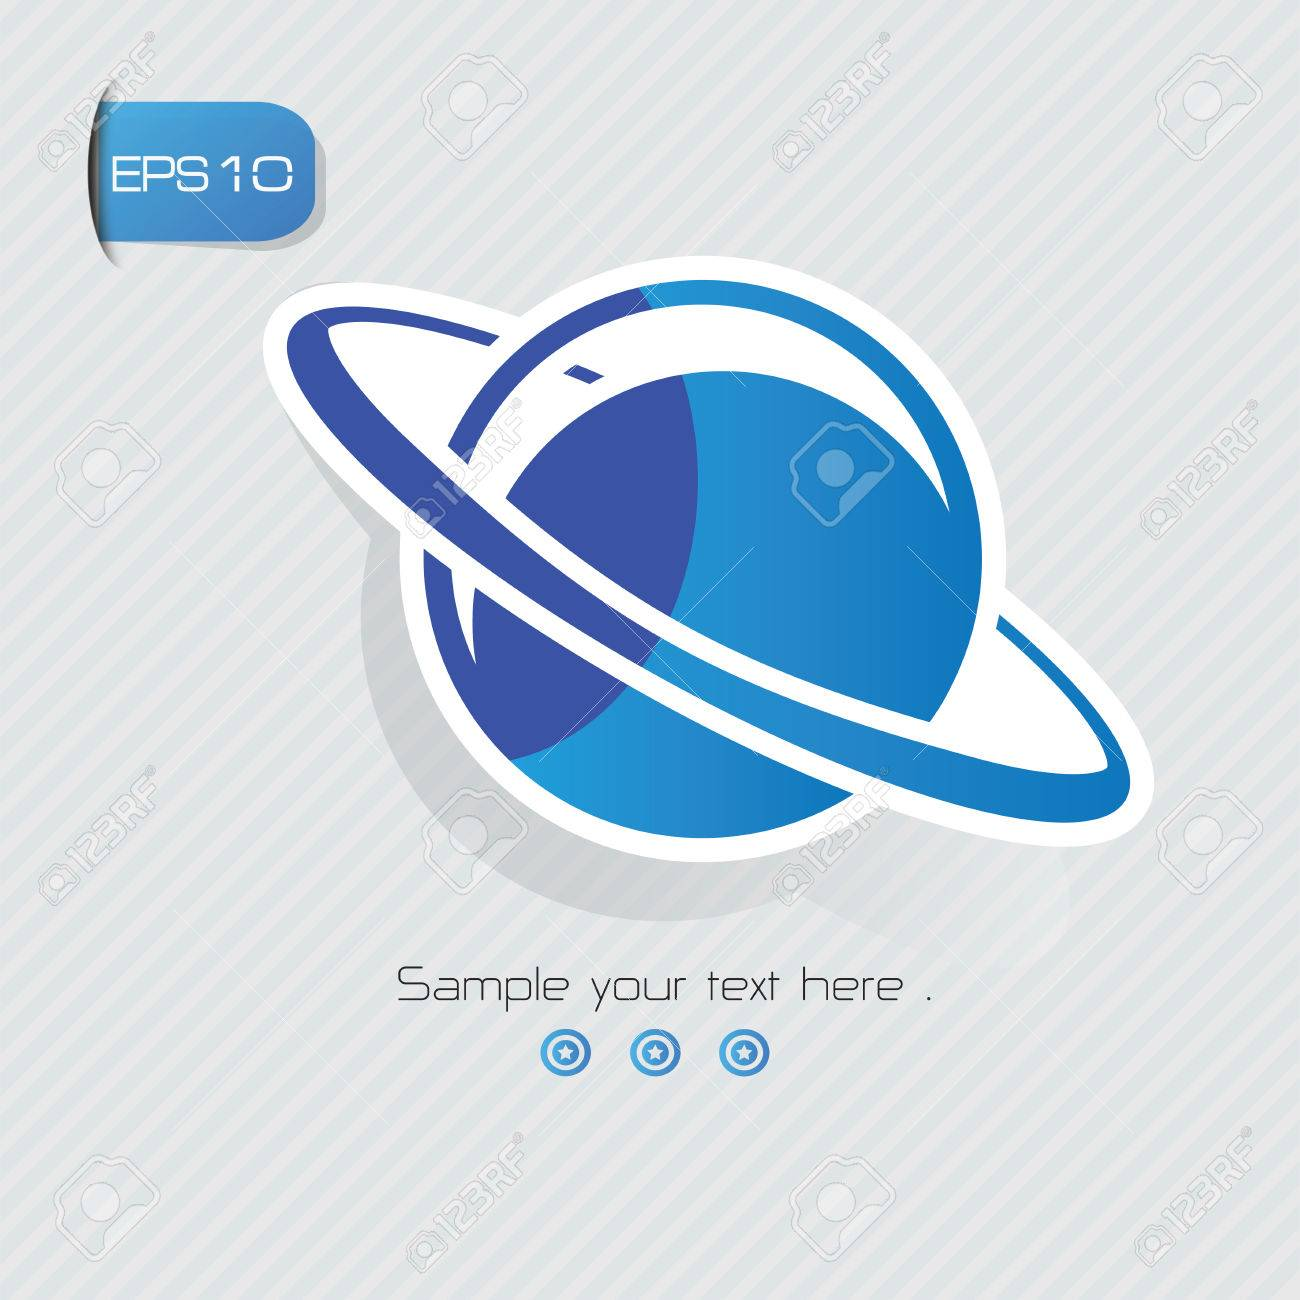 Saturn symbolsticker designblue versionclean vector royalty free saturn symbolsticker designblue versionclean vector stock vector 34962497 buycottarizona Image collections